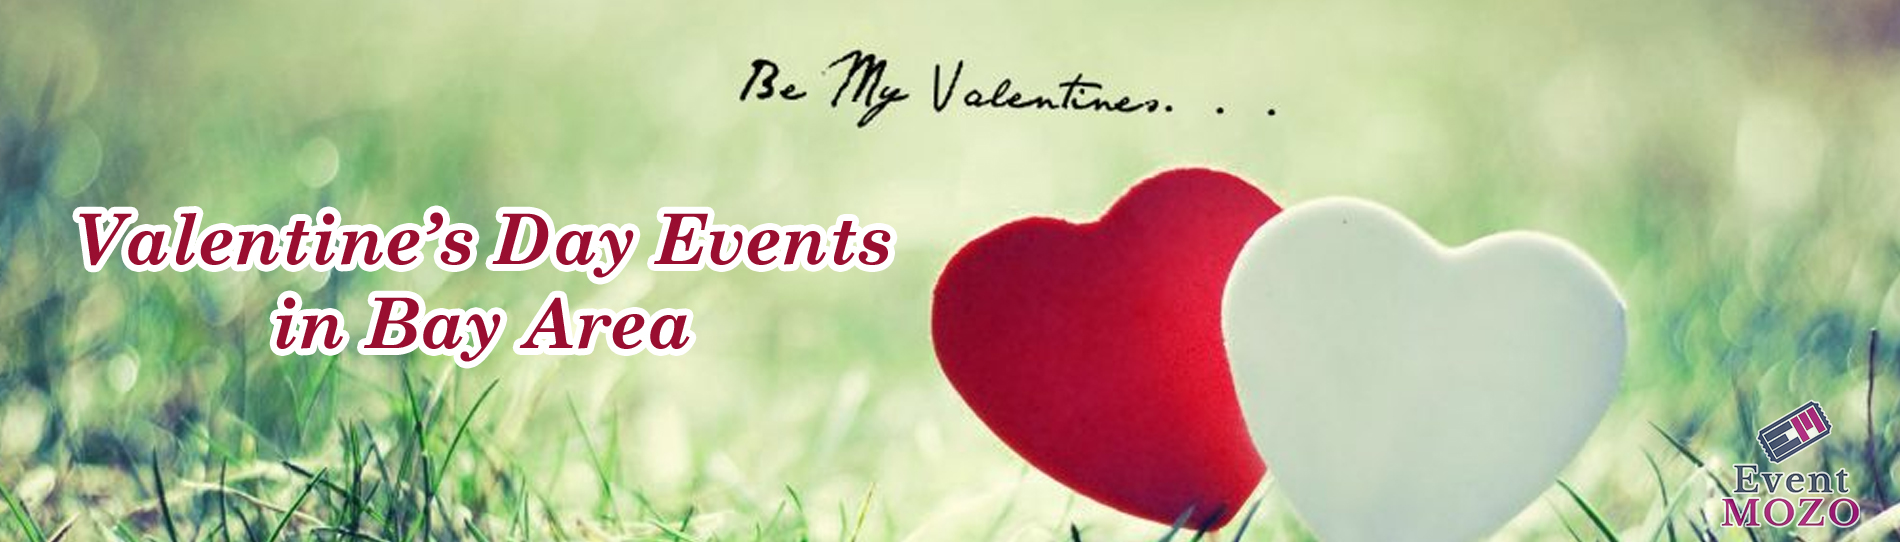 EventMozo Valentine Events Bay Area